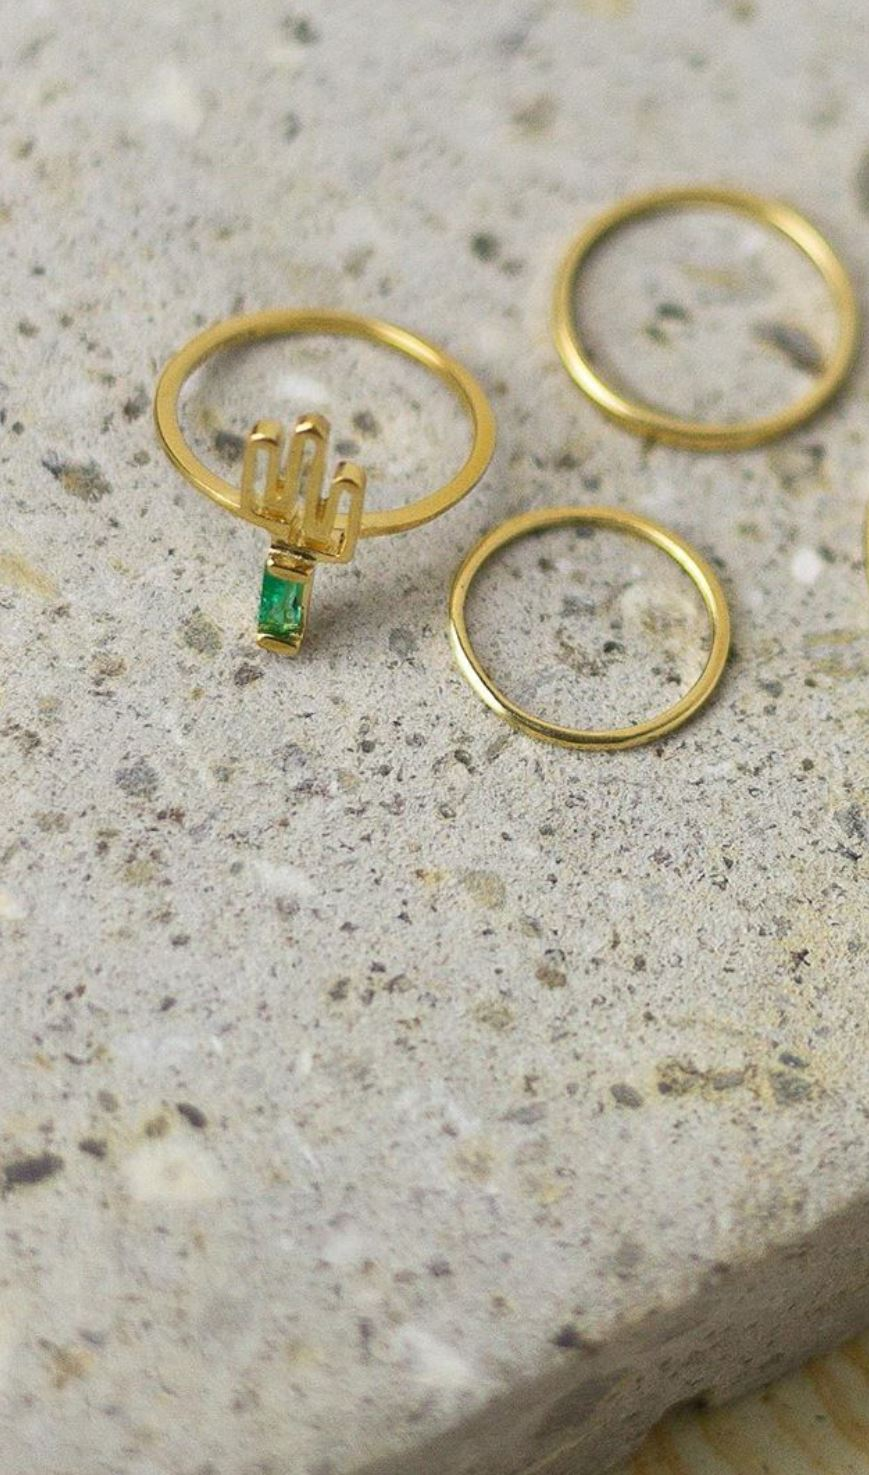 Cactus Ring 3 pieces